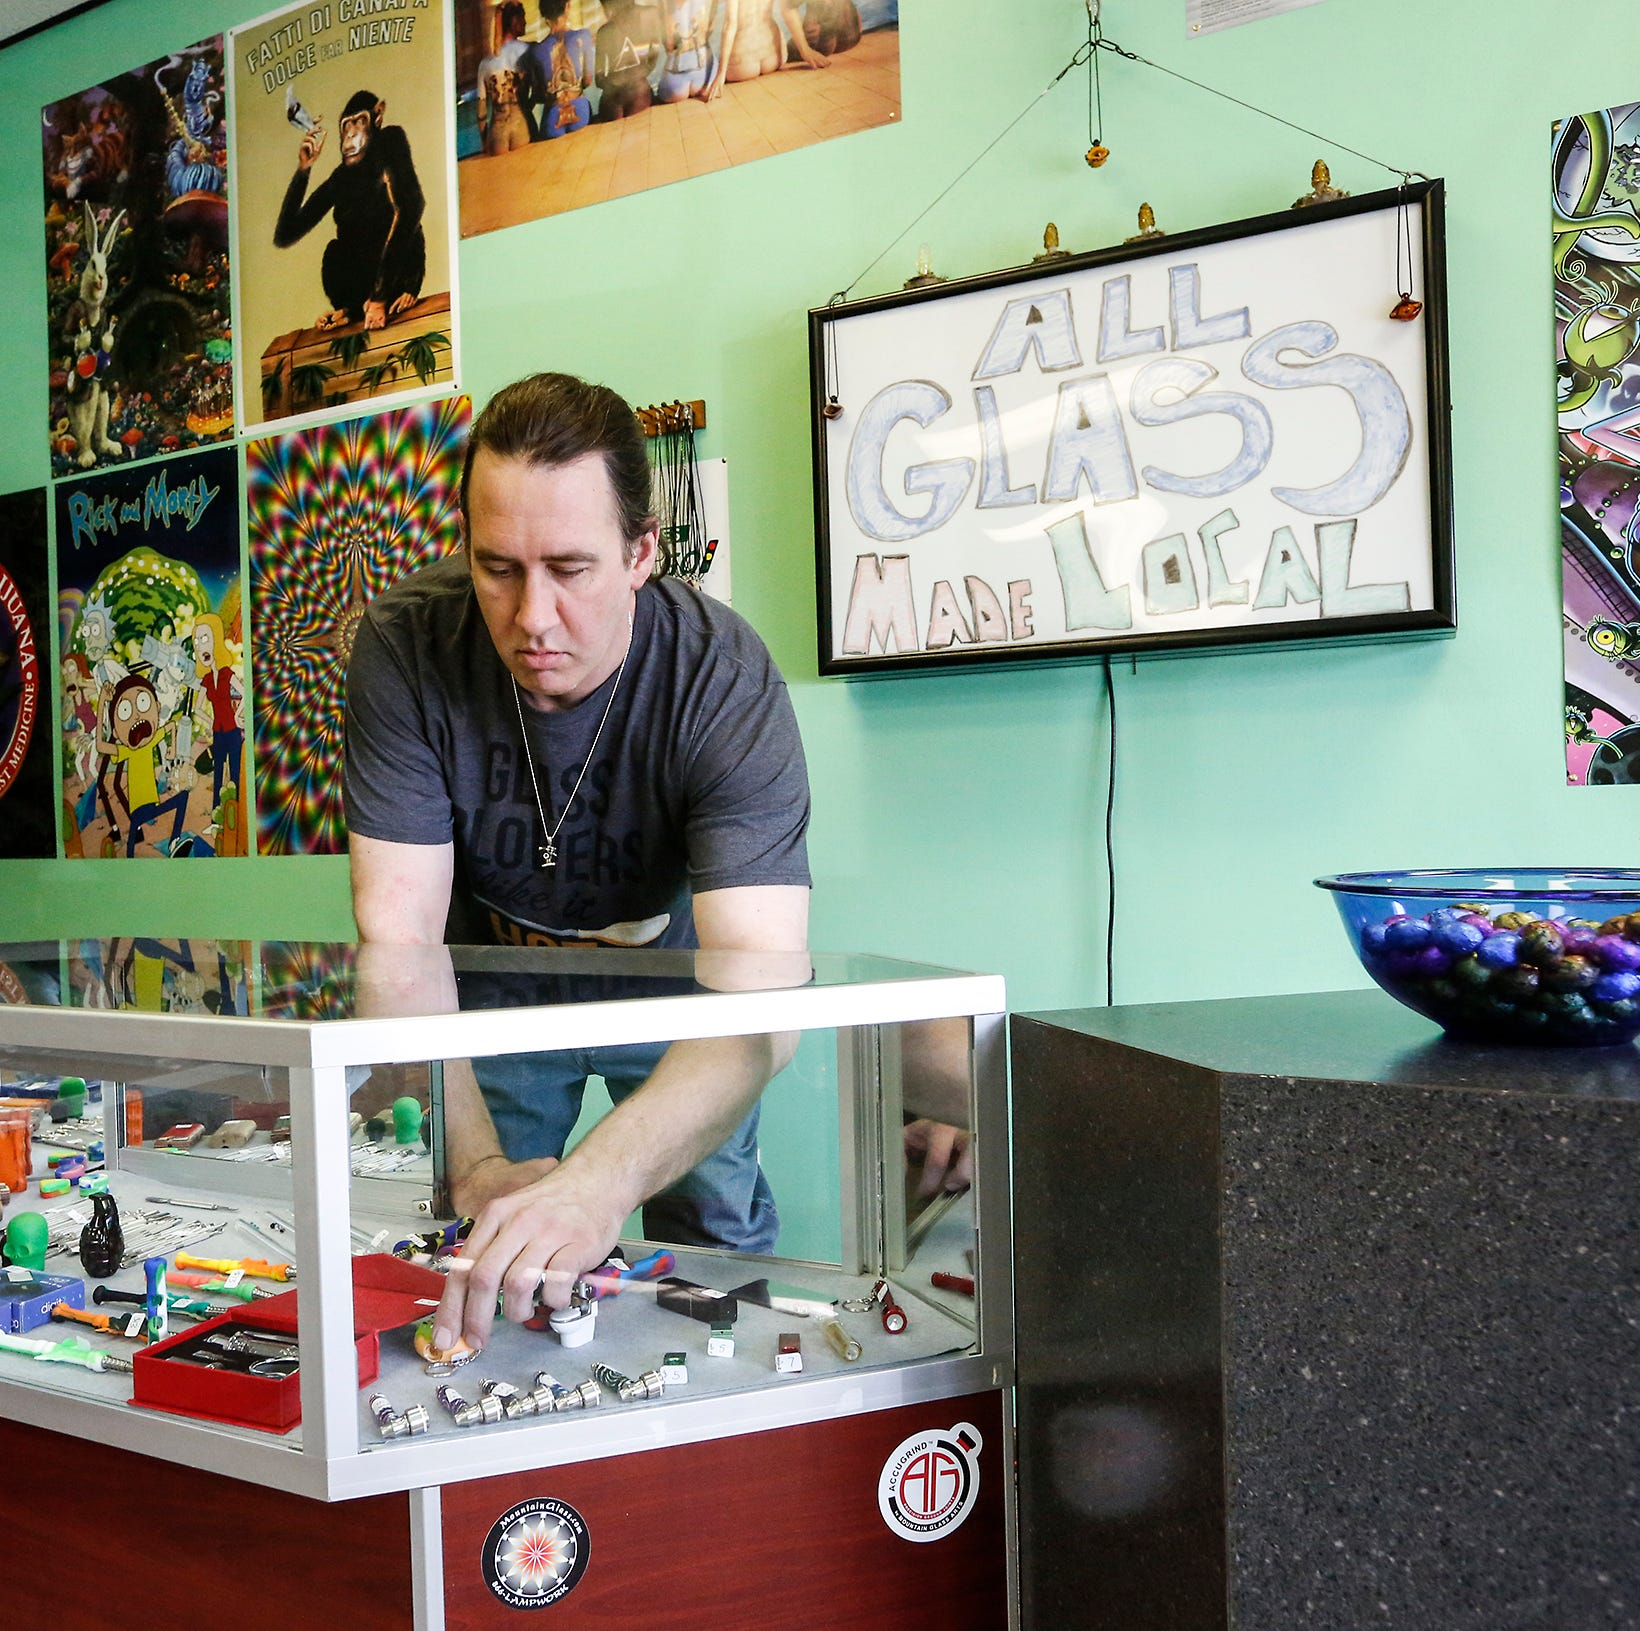 New FDL business Goblinz Glass to create unique art, from jewelry to Gremlins | Streetwise